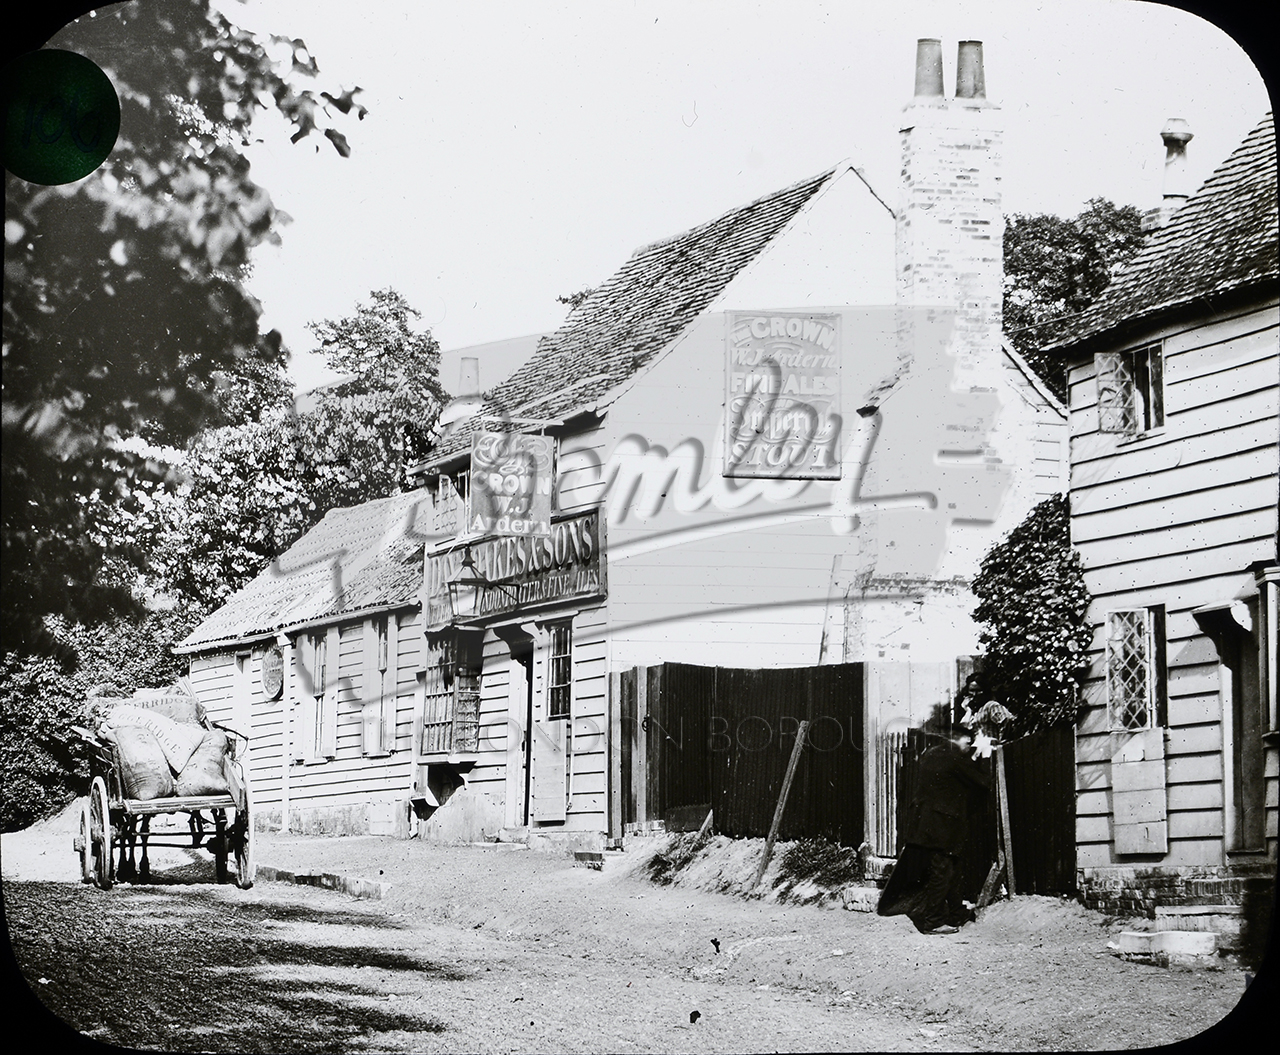 Phls 1106 the old crown inn bromley bromley borough photos for The bromley